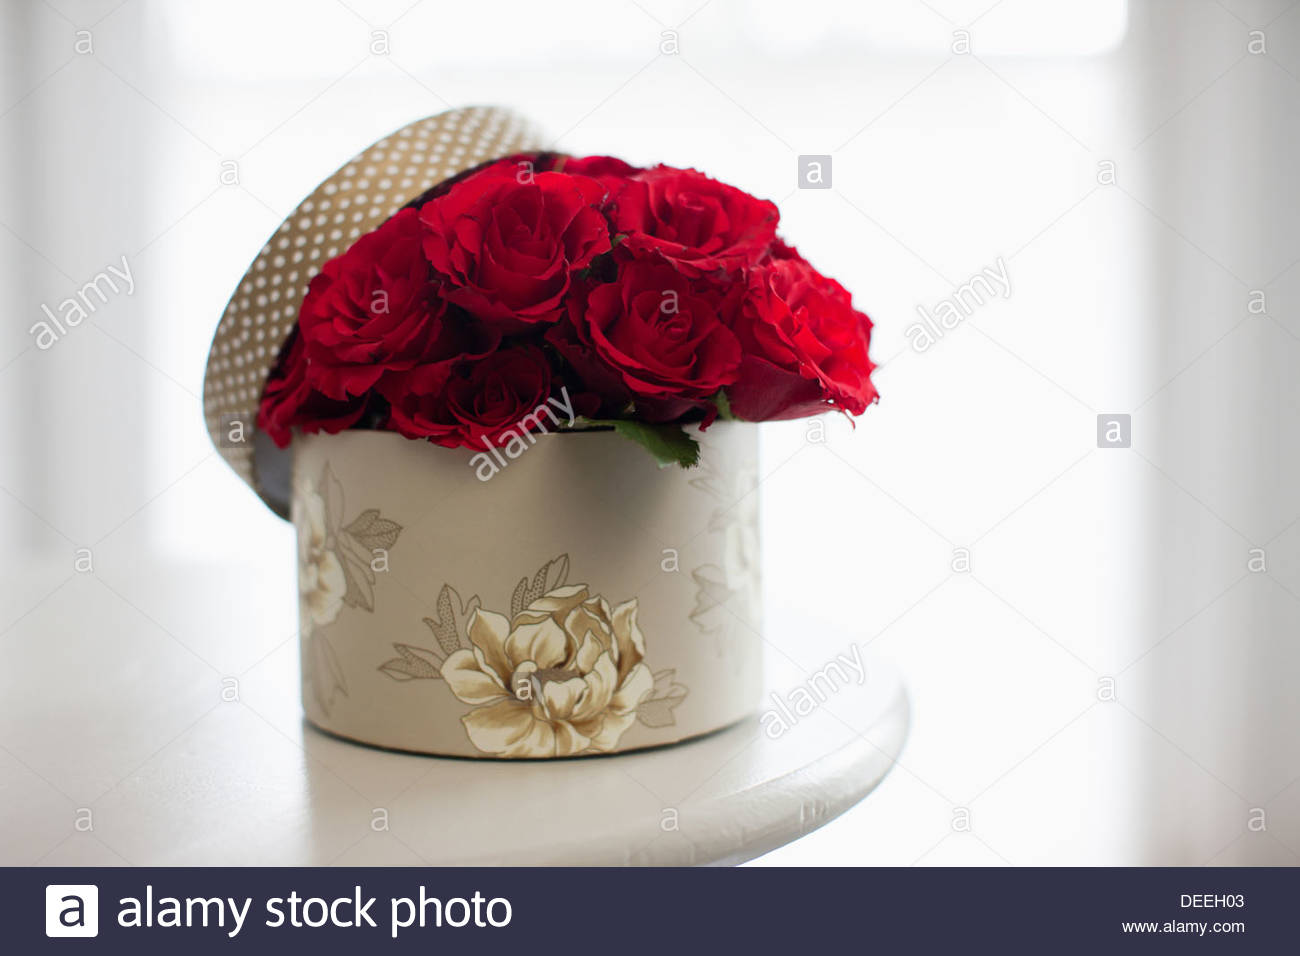 Red rose bouquet in gift box Stock Photo